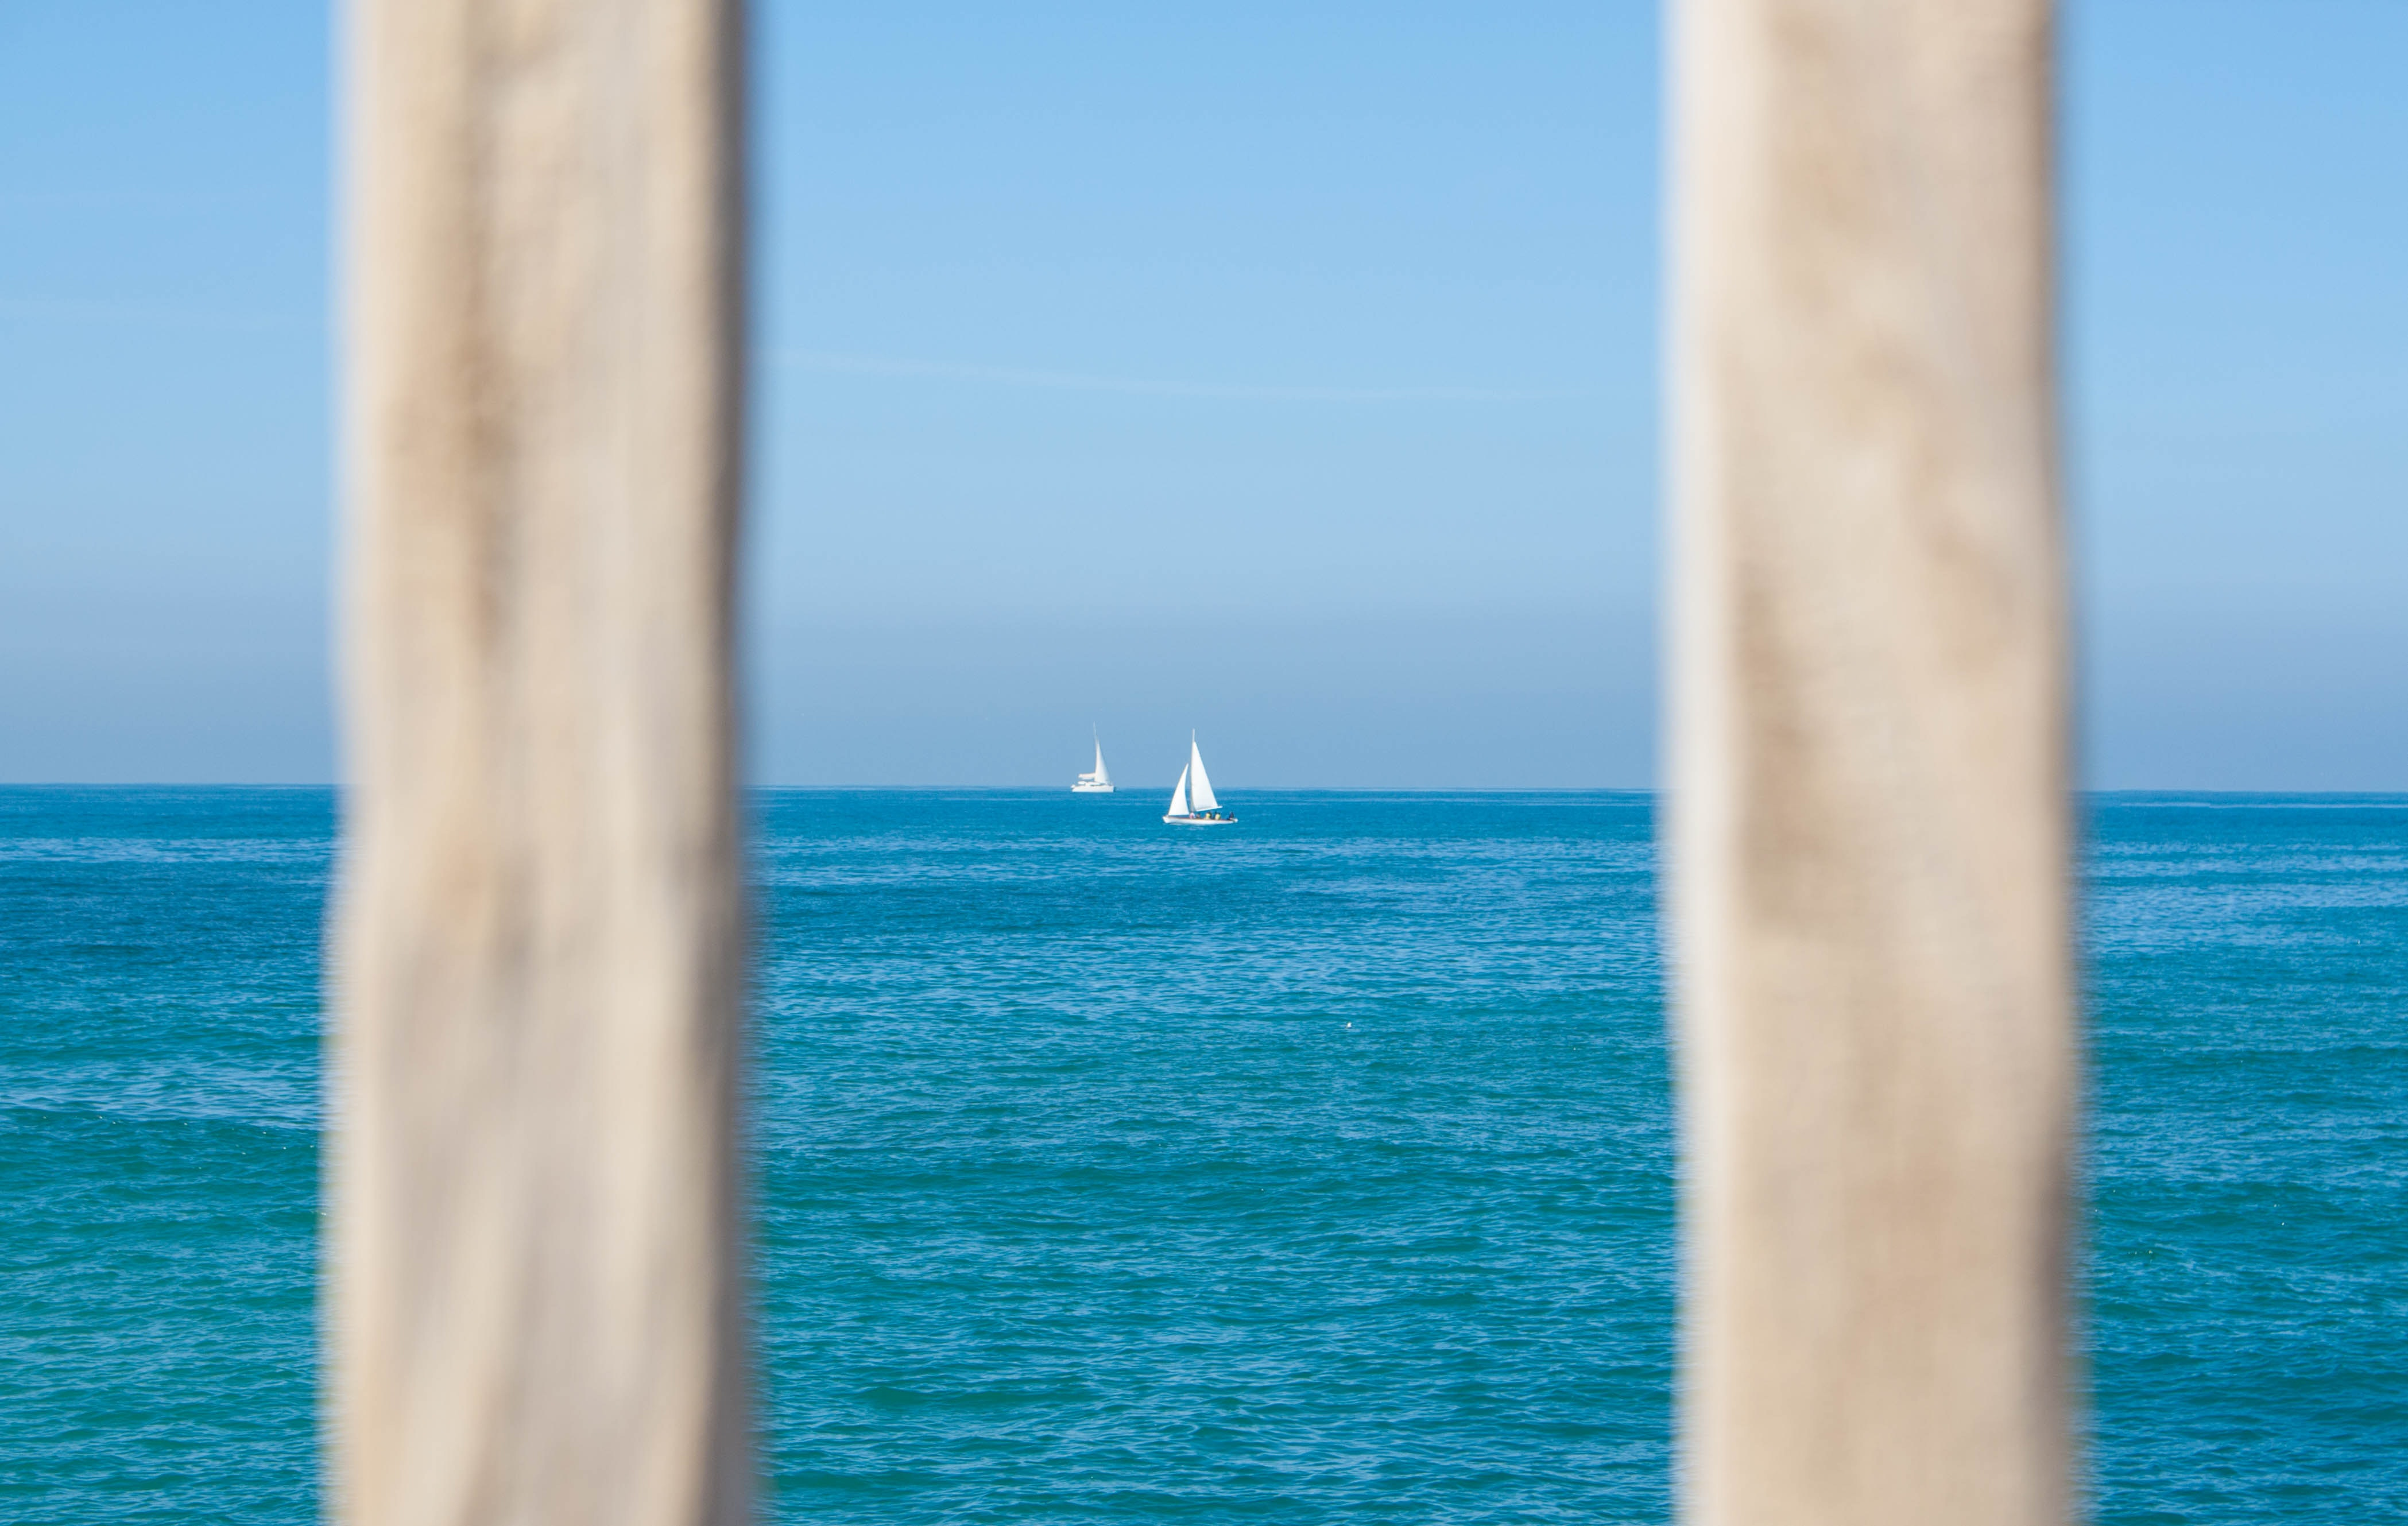 White sailing boat on body of water photo